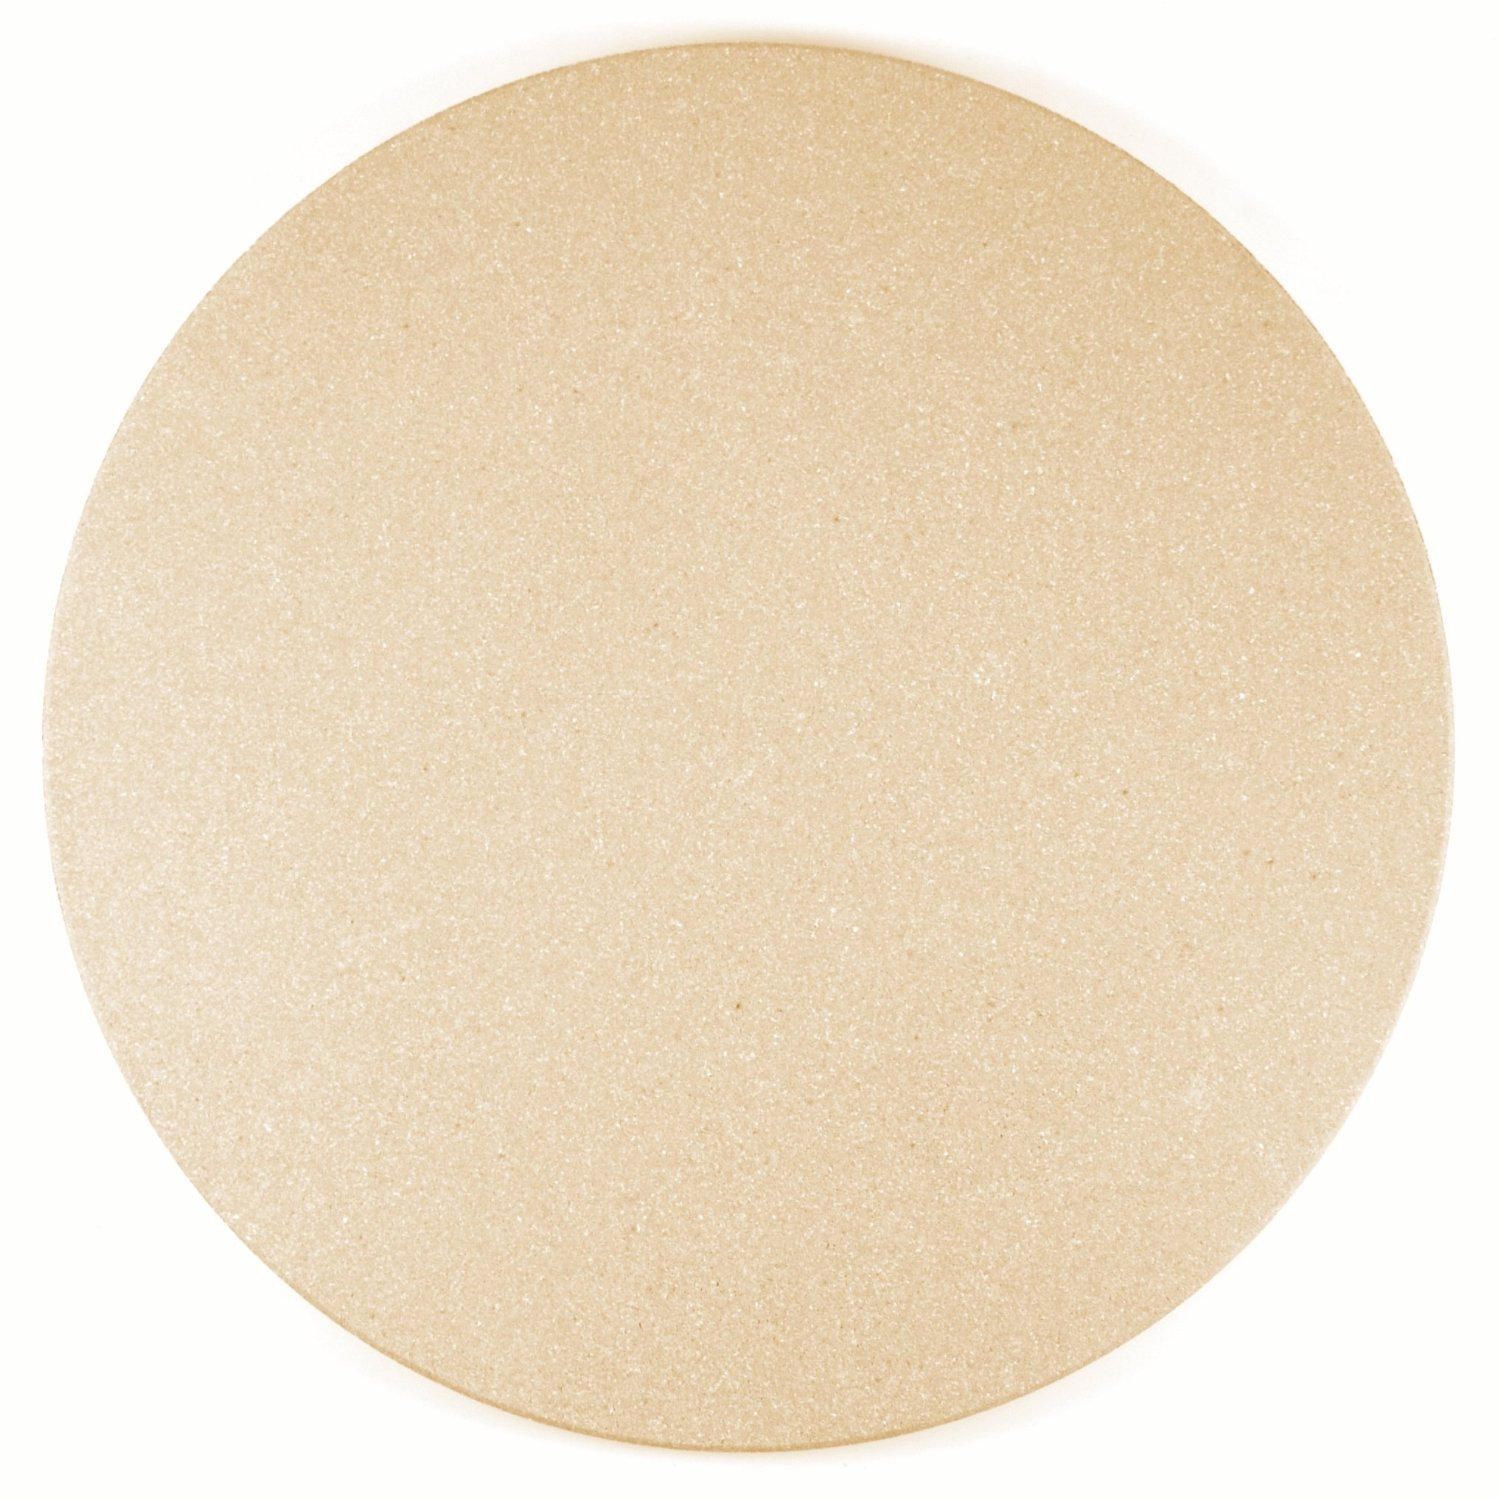 14-Inch Round Baking Stone, Made in the USA By Old Stone ...